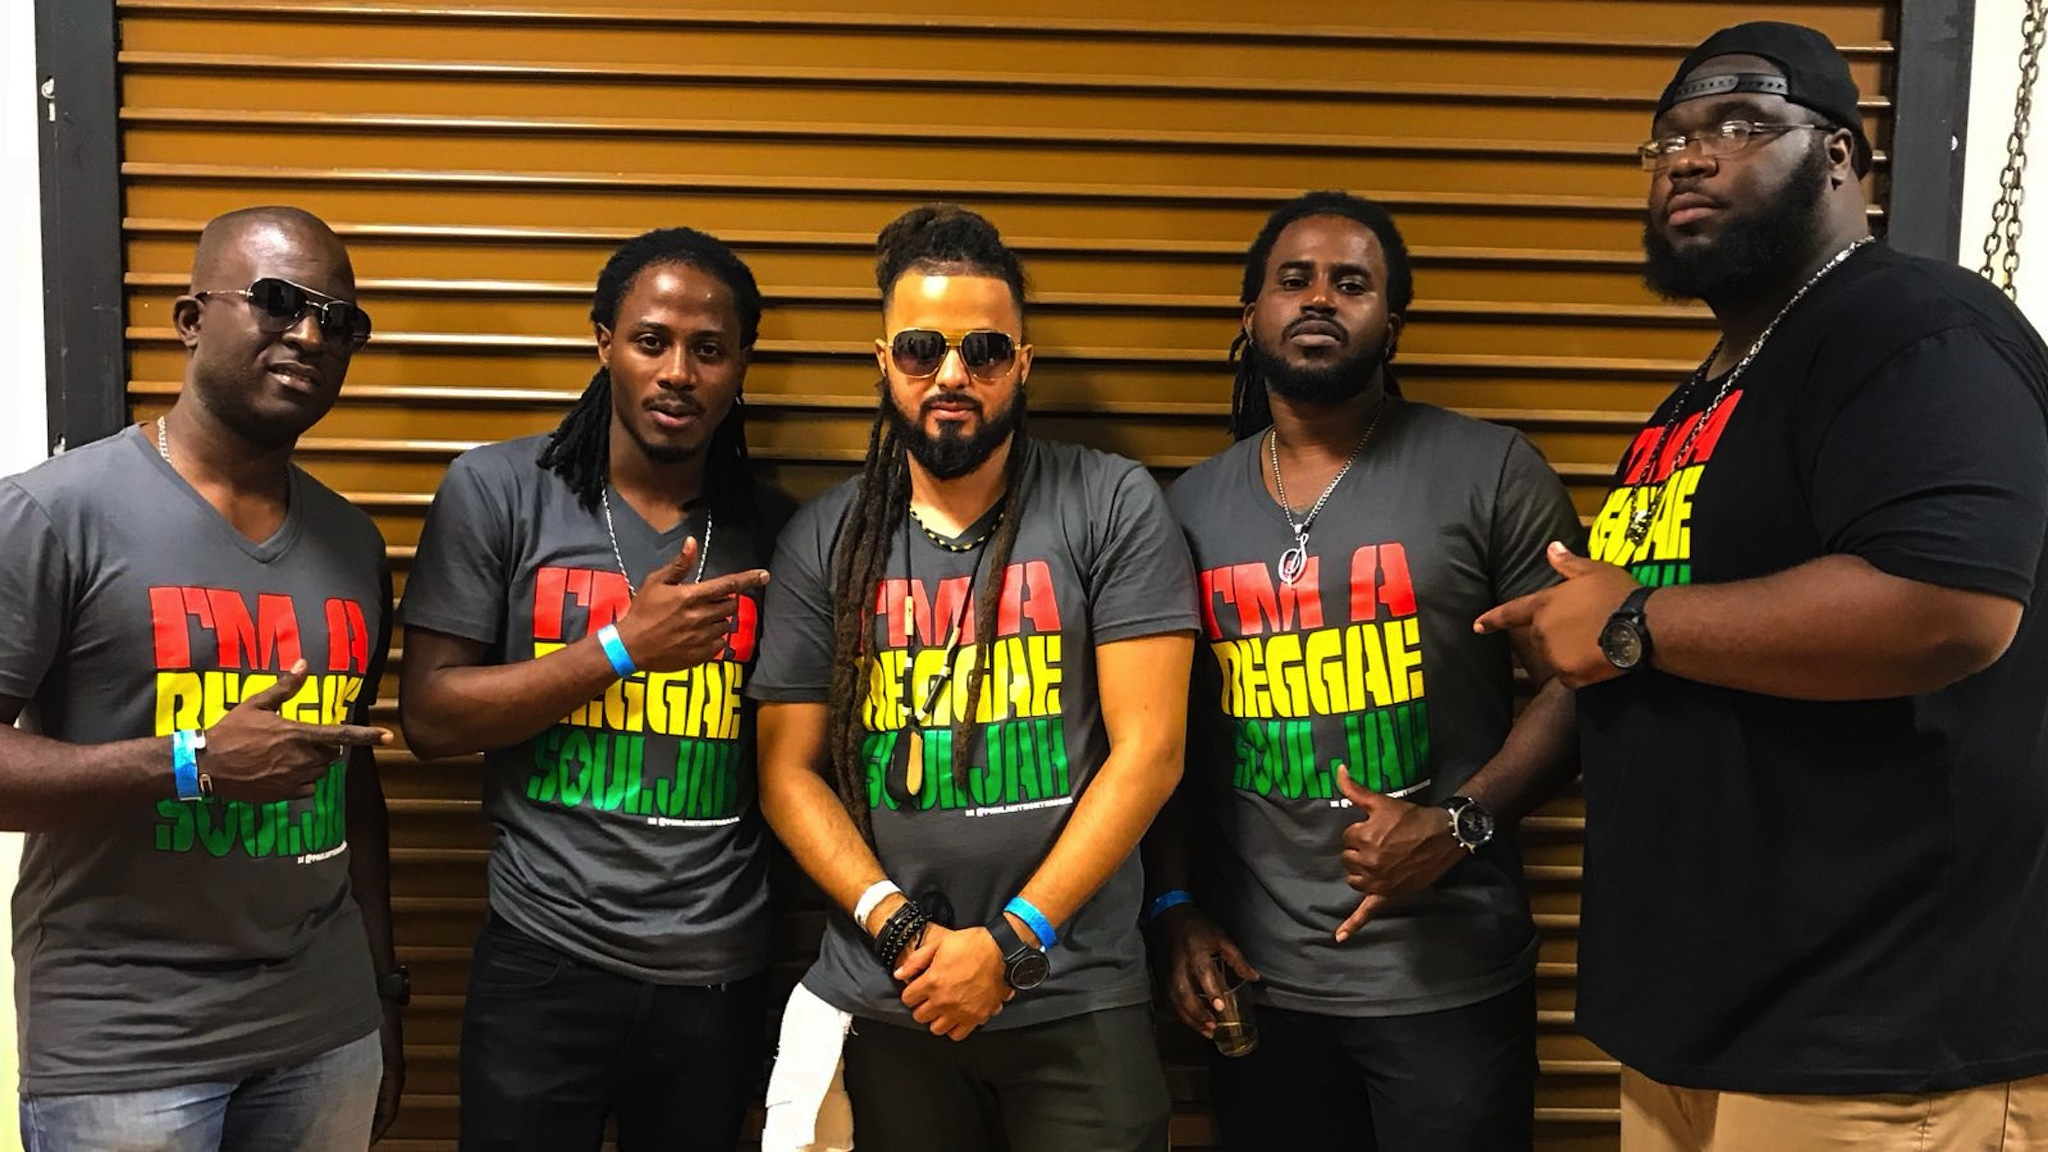 Paul Anthony & The Reggae Souljahs at Reggae4Cure Fest 2018